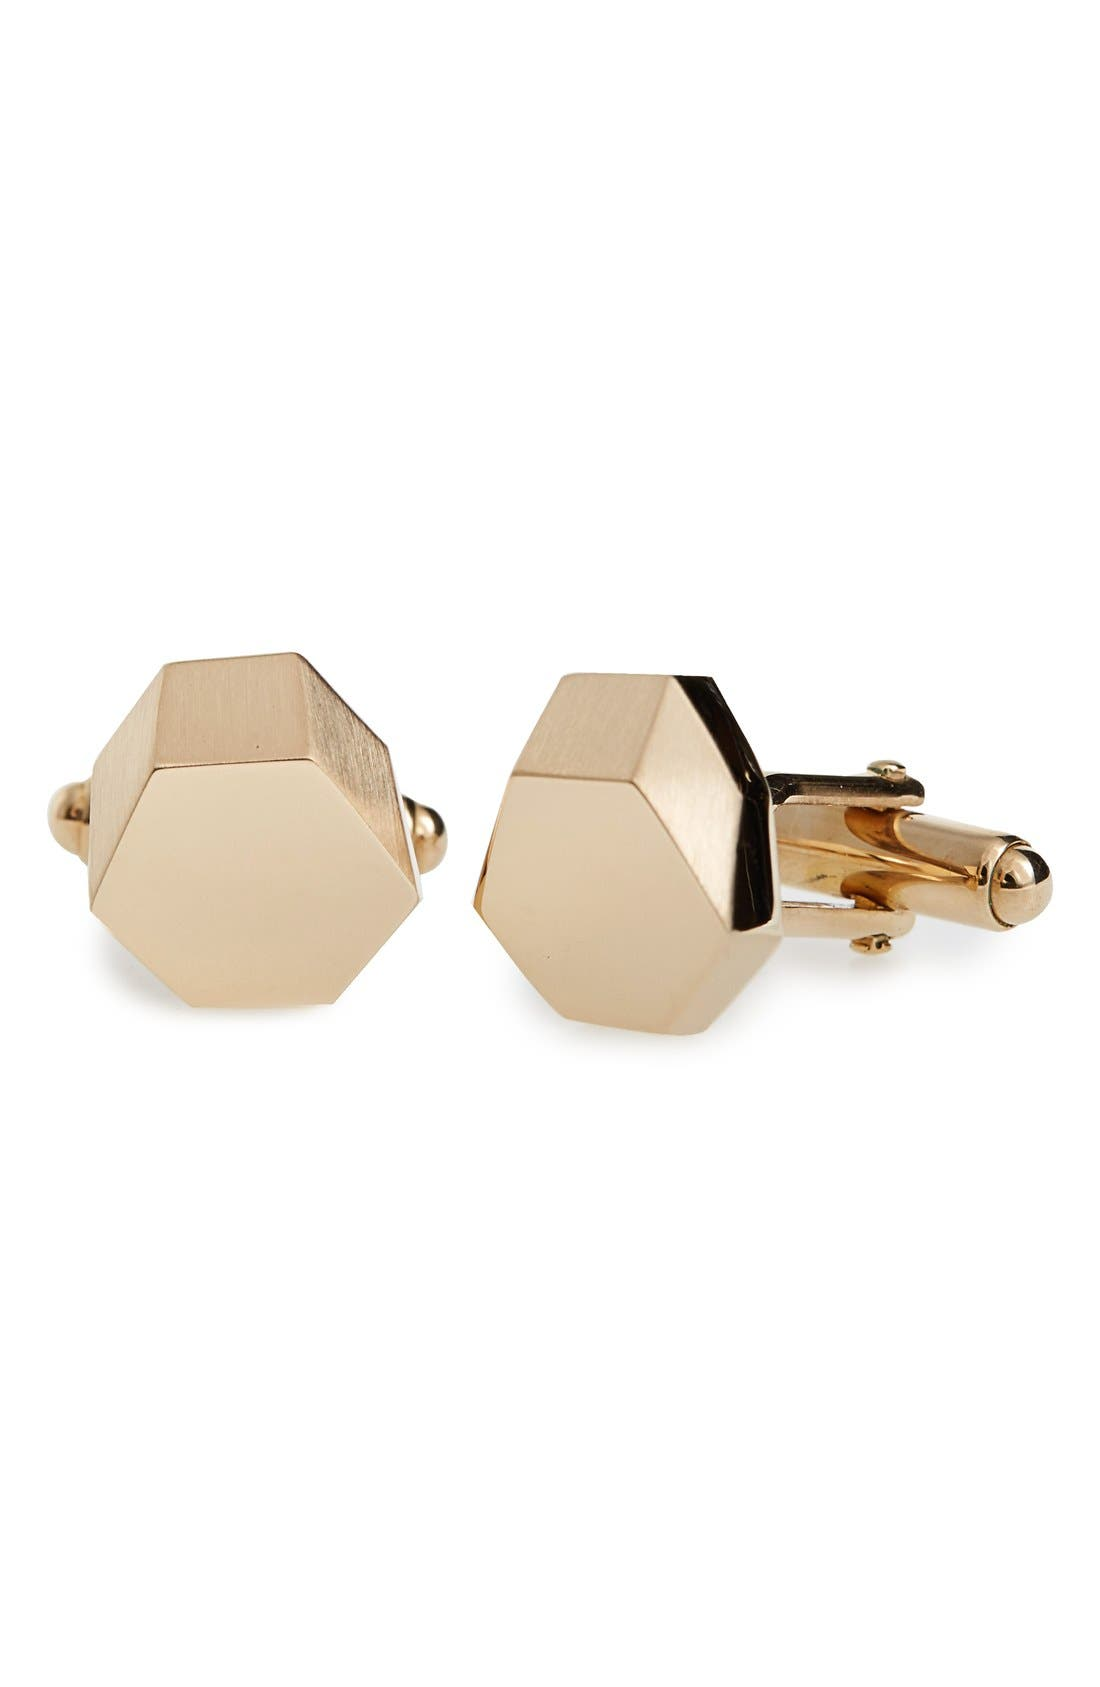 Lanvin Hexagonal Metal Cuff Links